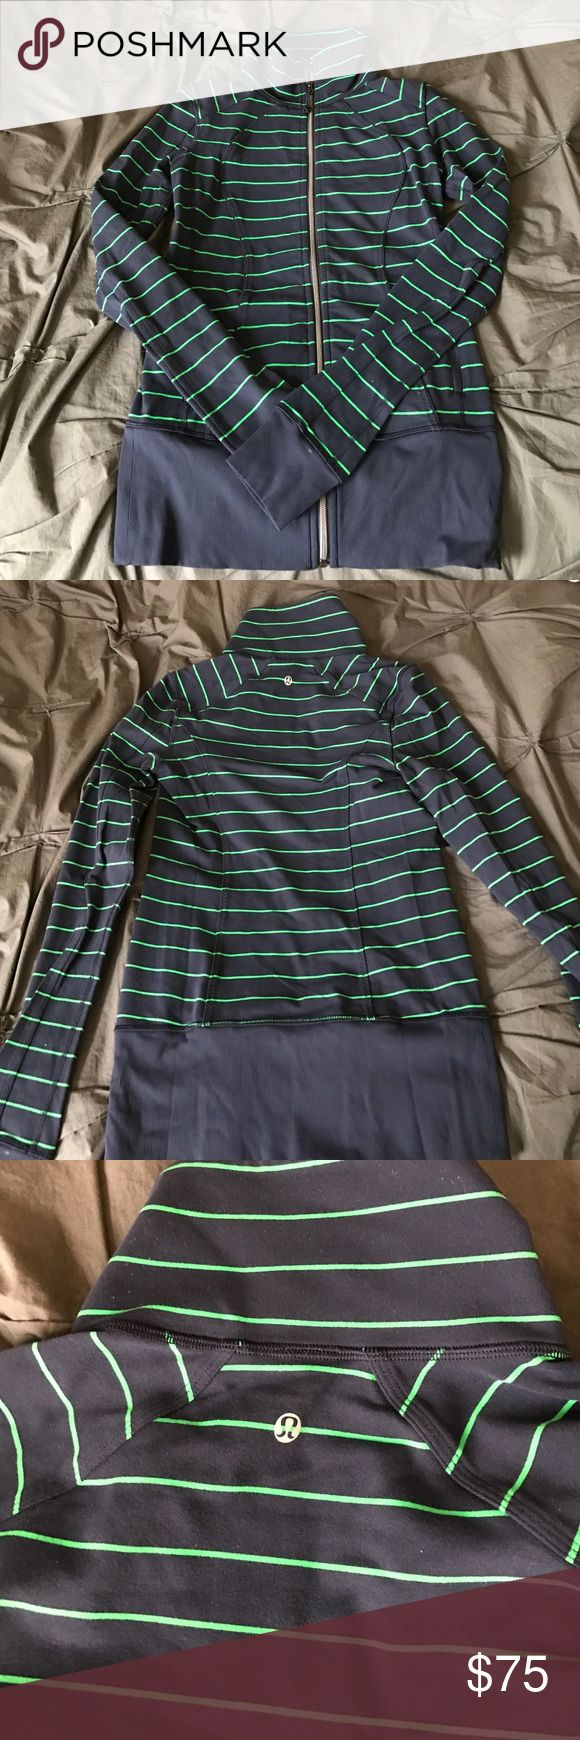 Navy and Green Lululemon zip up Navy and Green striped zip up. Long (covers butt), thumb holes in sleeves, two zip pockets. lululemon athletica Tops Sweatshirts & Hoodies